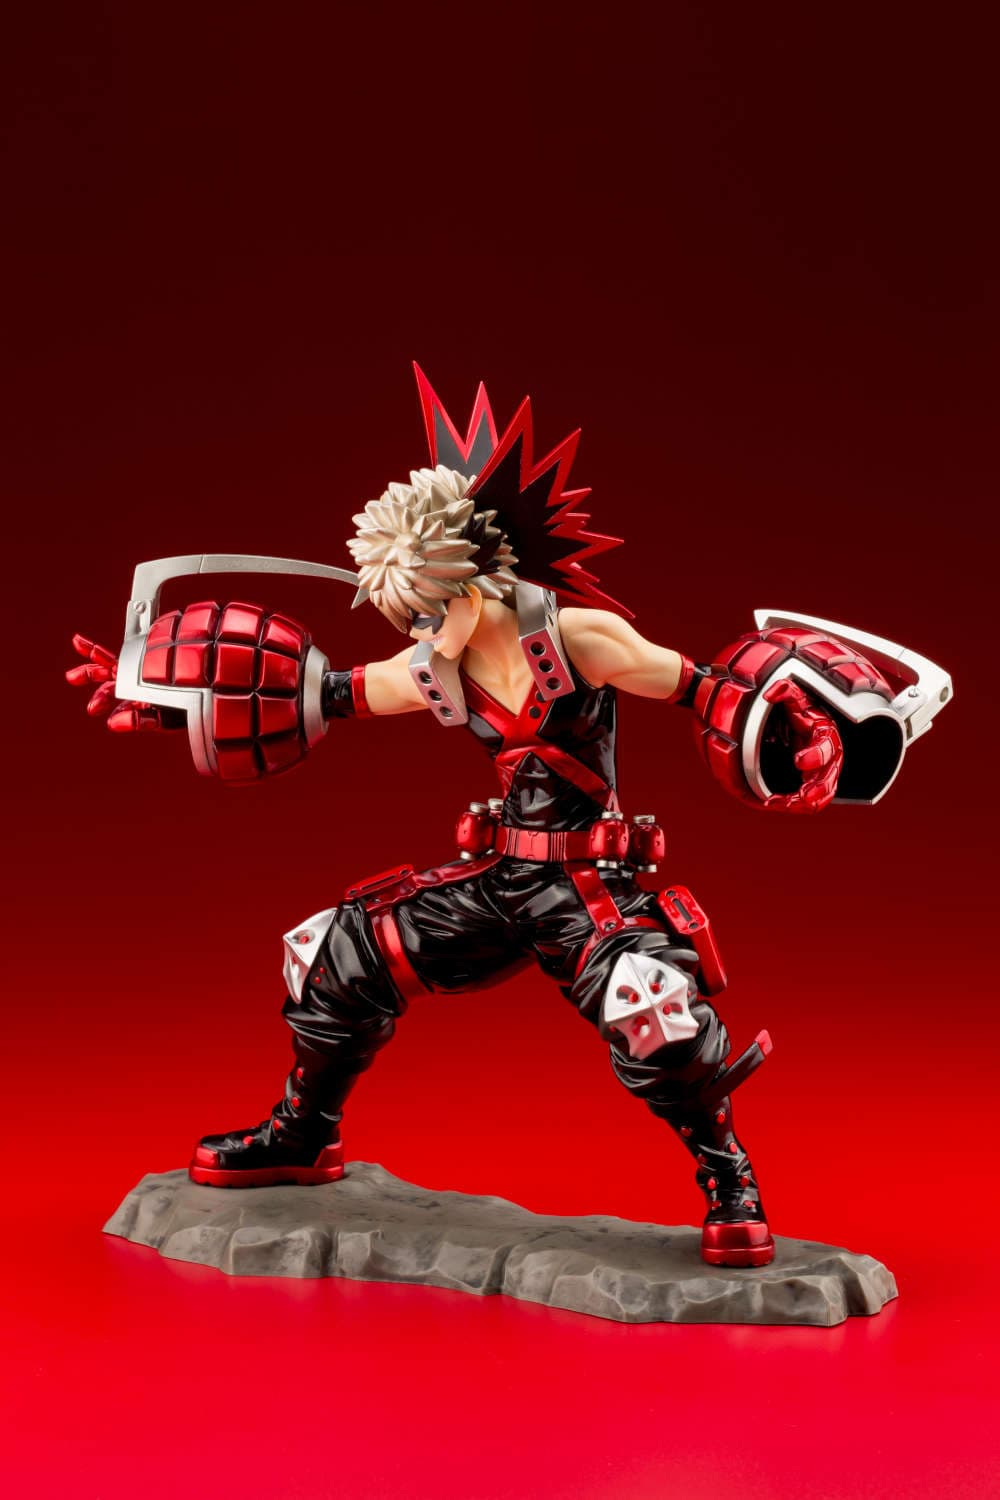 ARTFX-J-爆豪勝己-Limited-color-edition-002